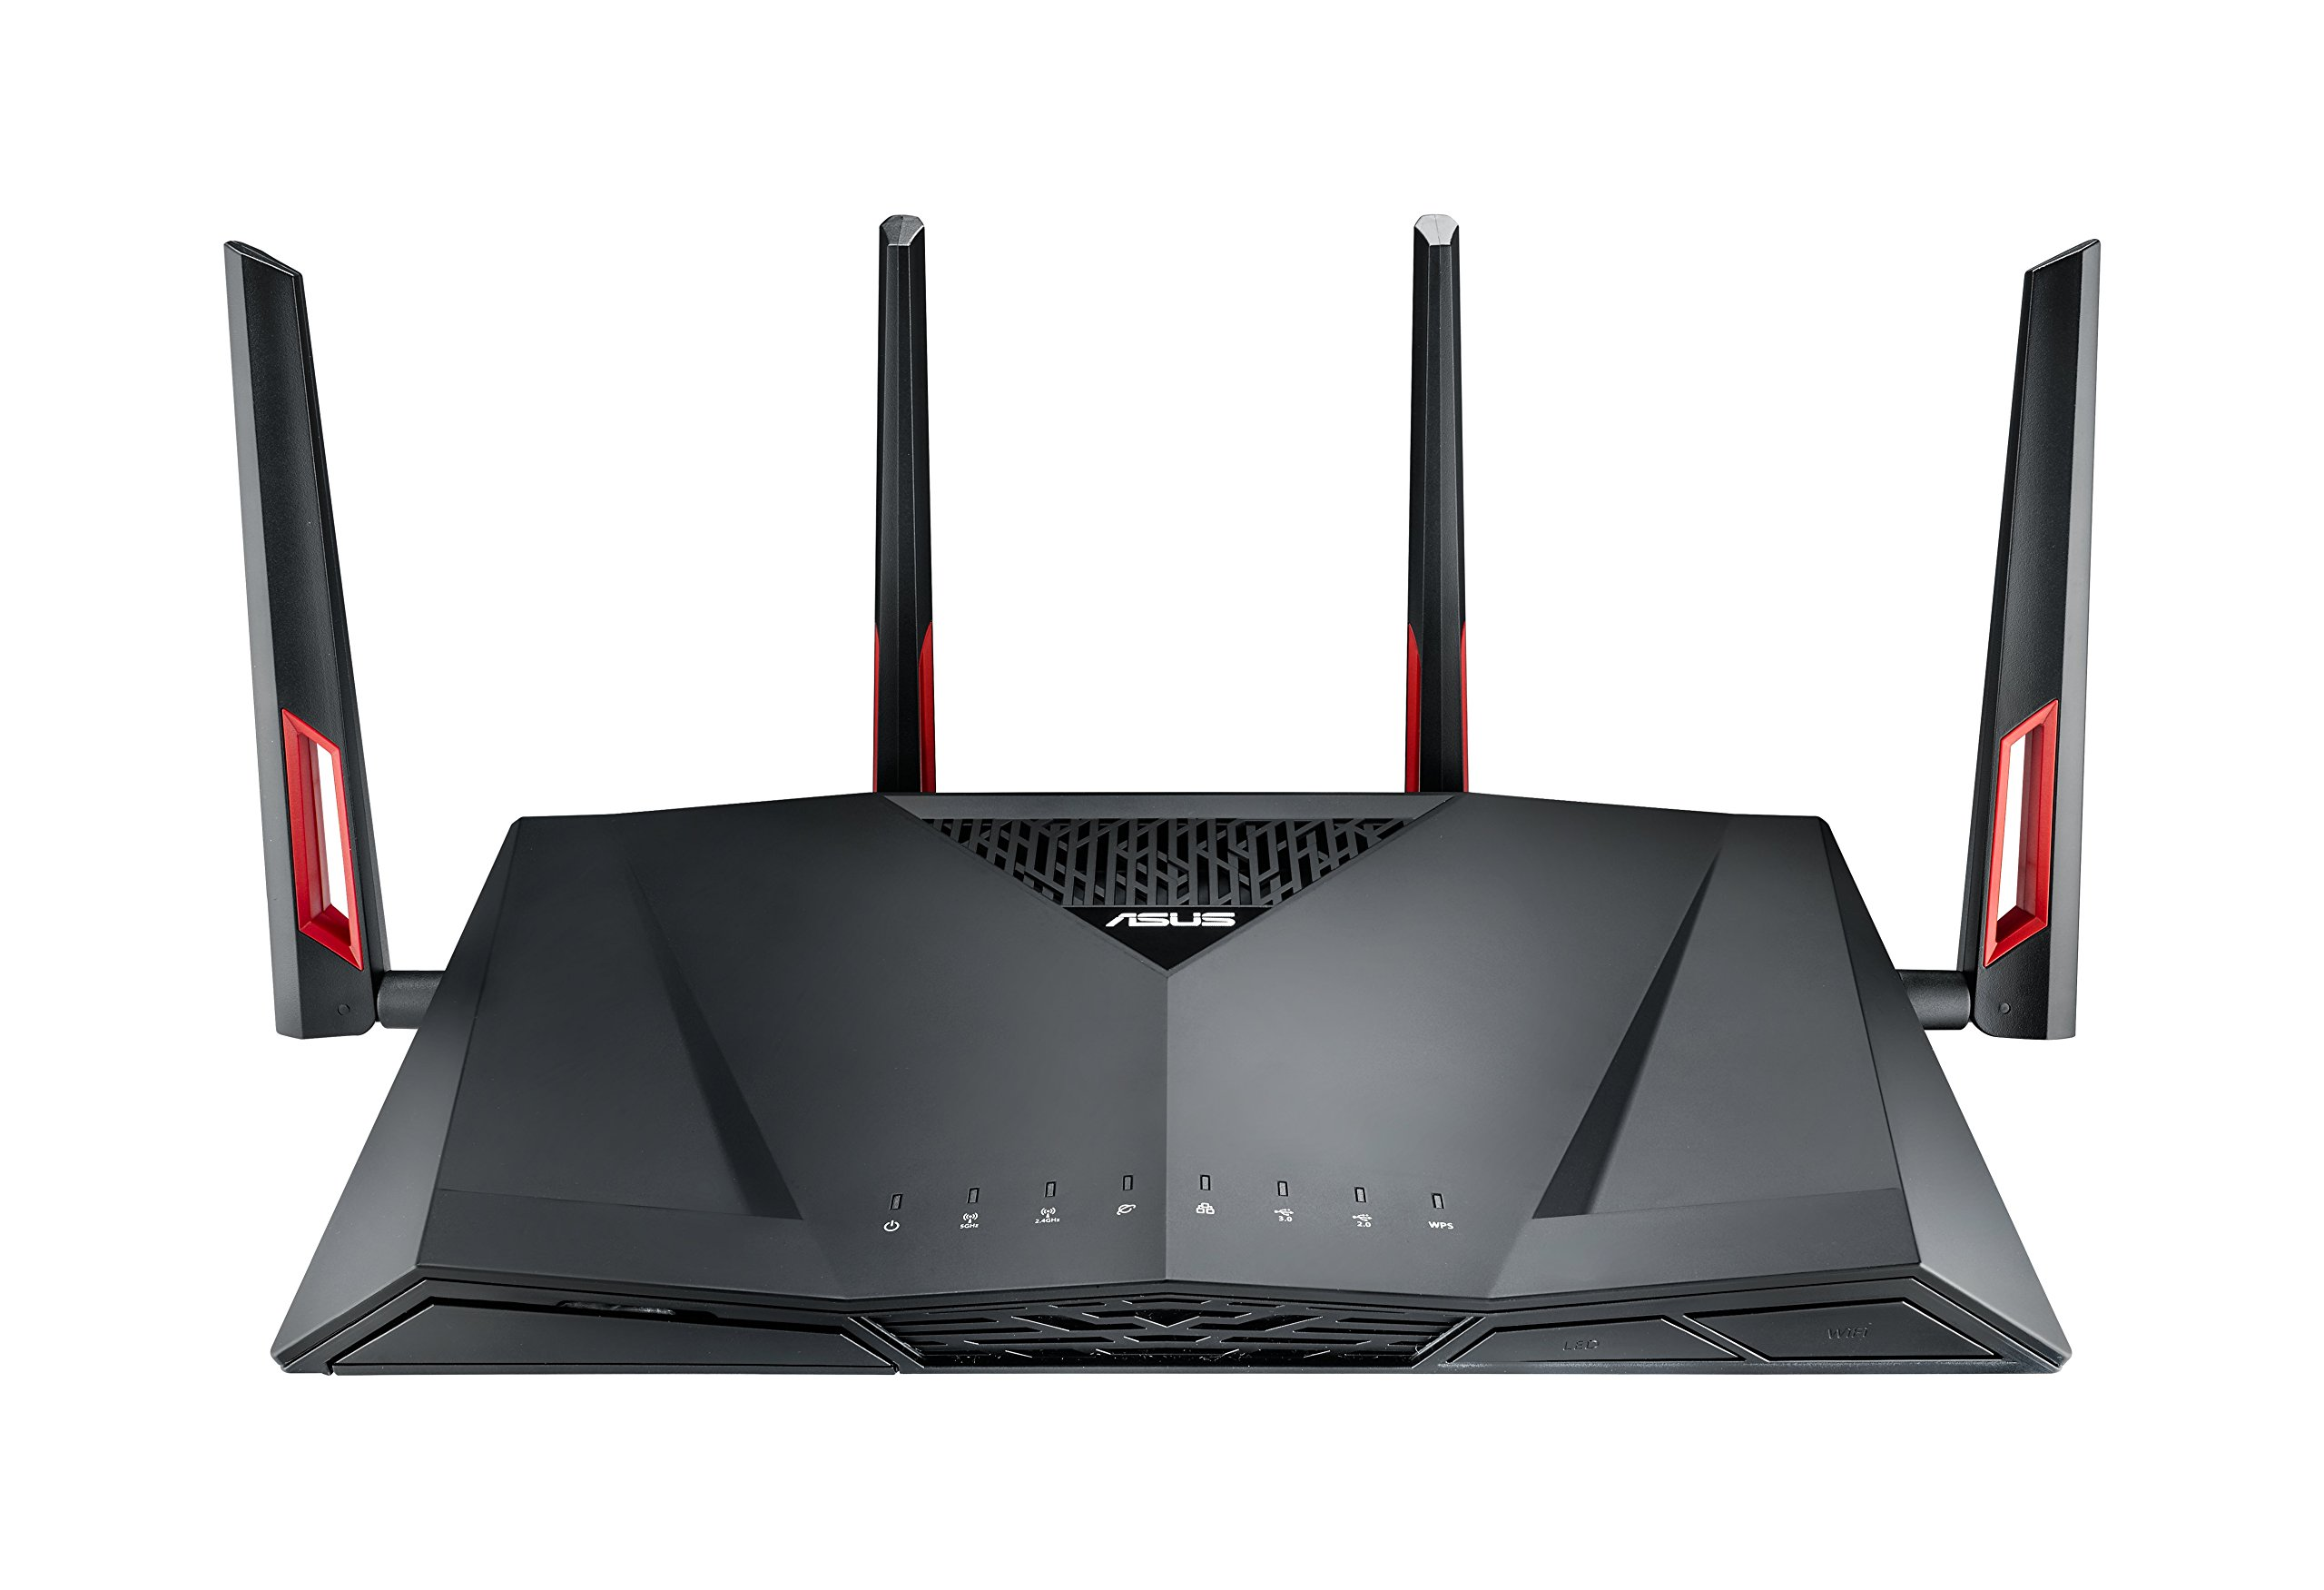 ASUS RT-AC88U Wireless-AC3100 Dual Band Gigabit Router, AiProtection with Trend Micro for Complete Network Security by Asus